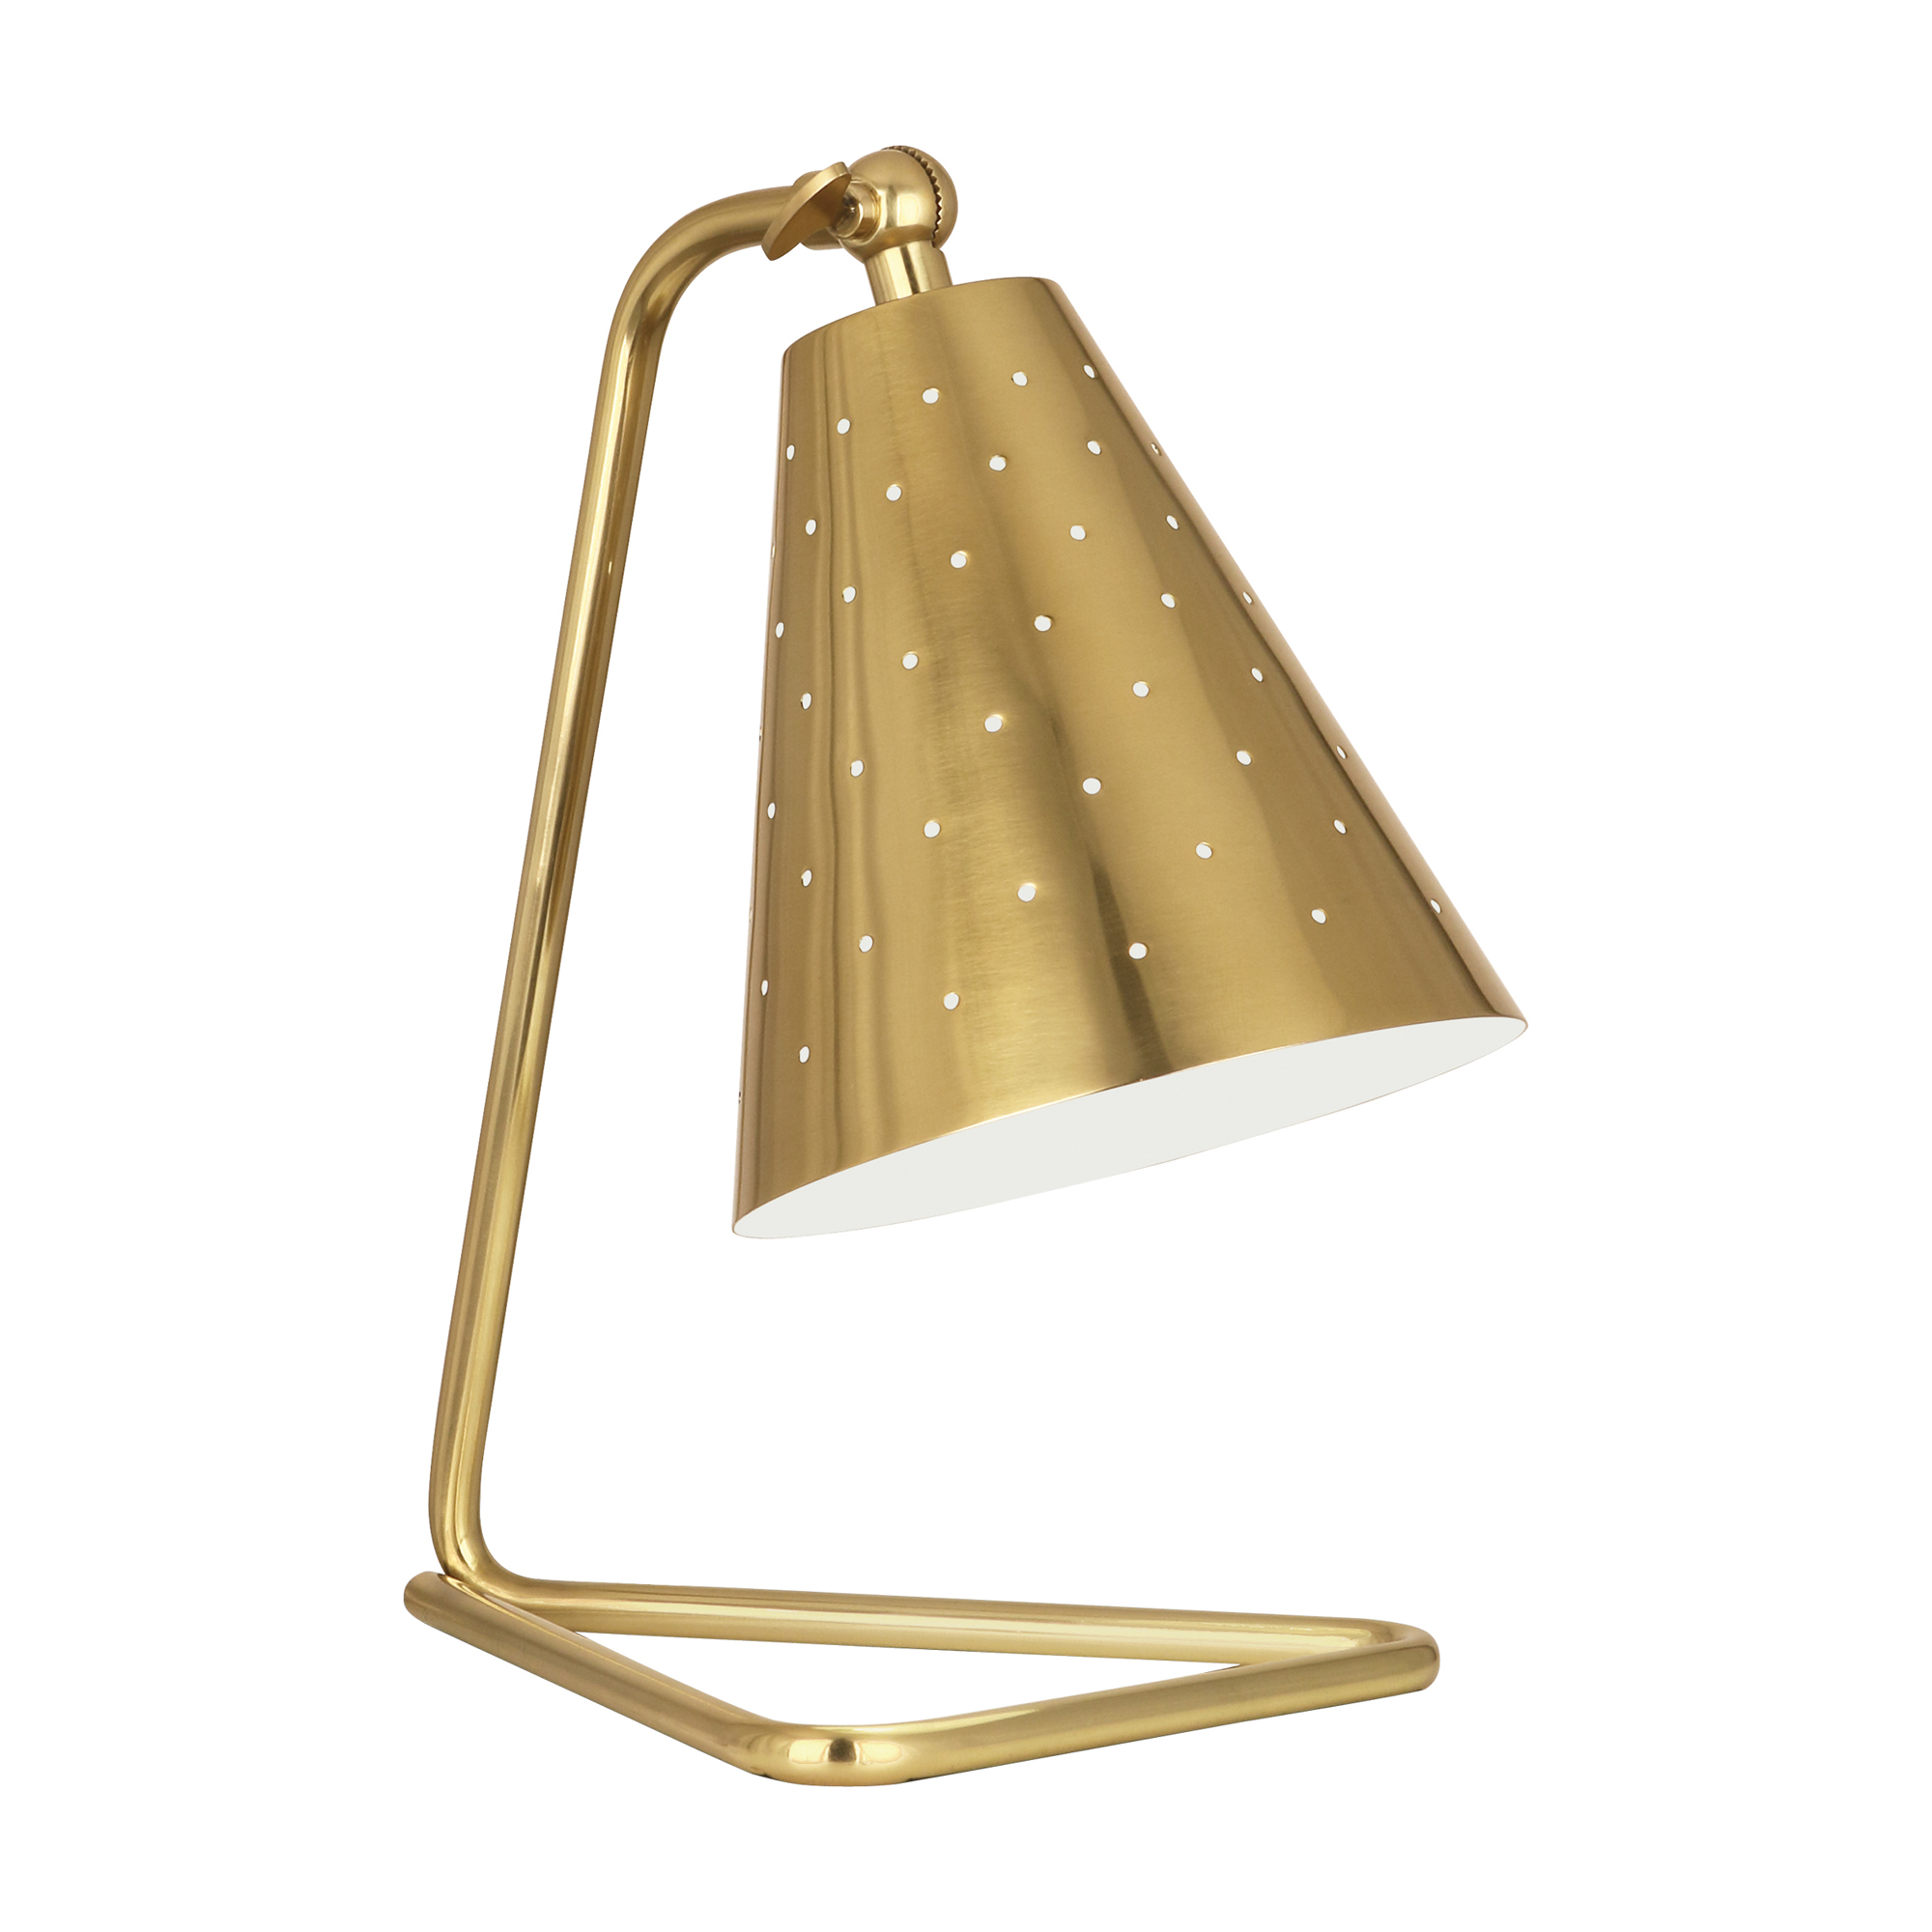 Pierce Accent Lamp Style #988